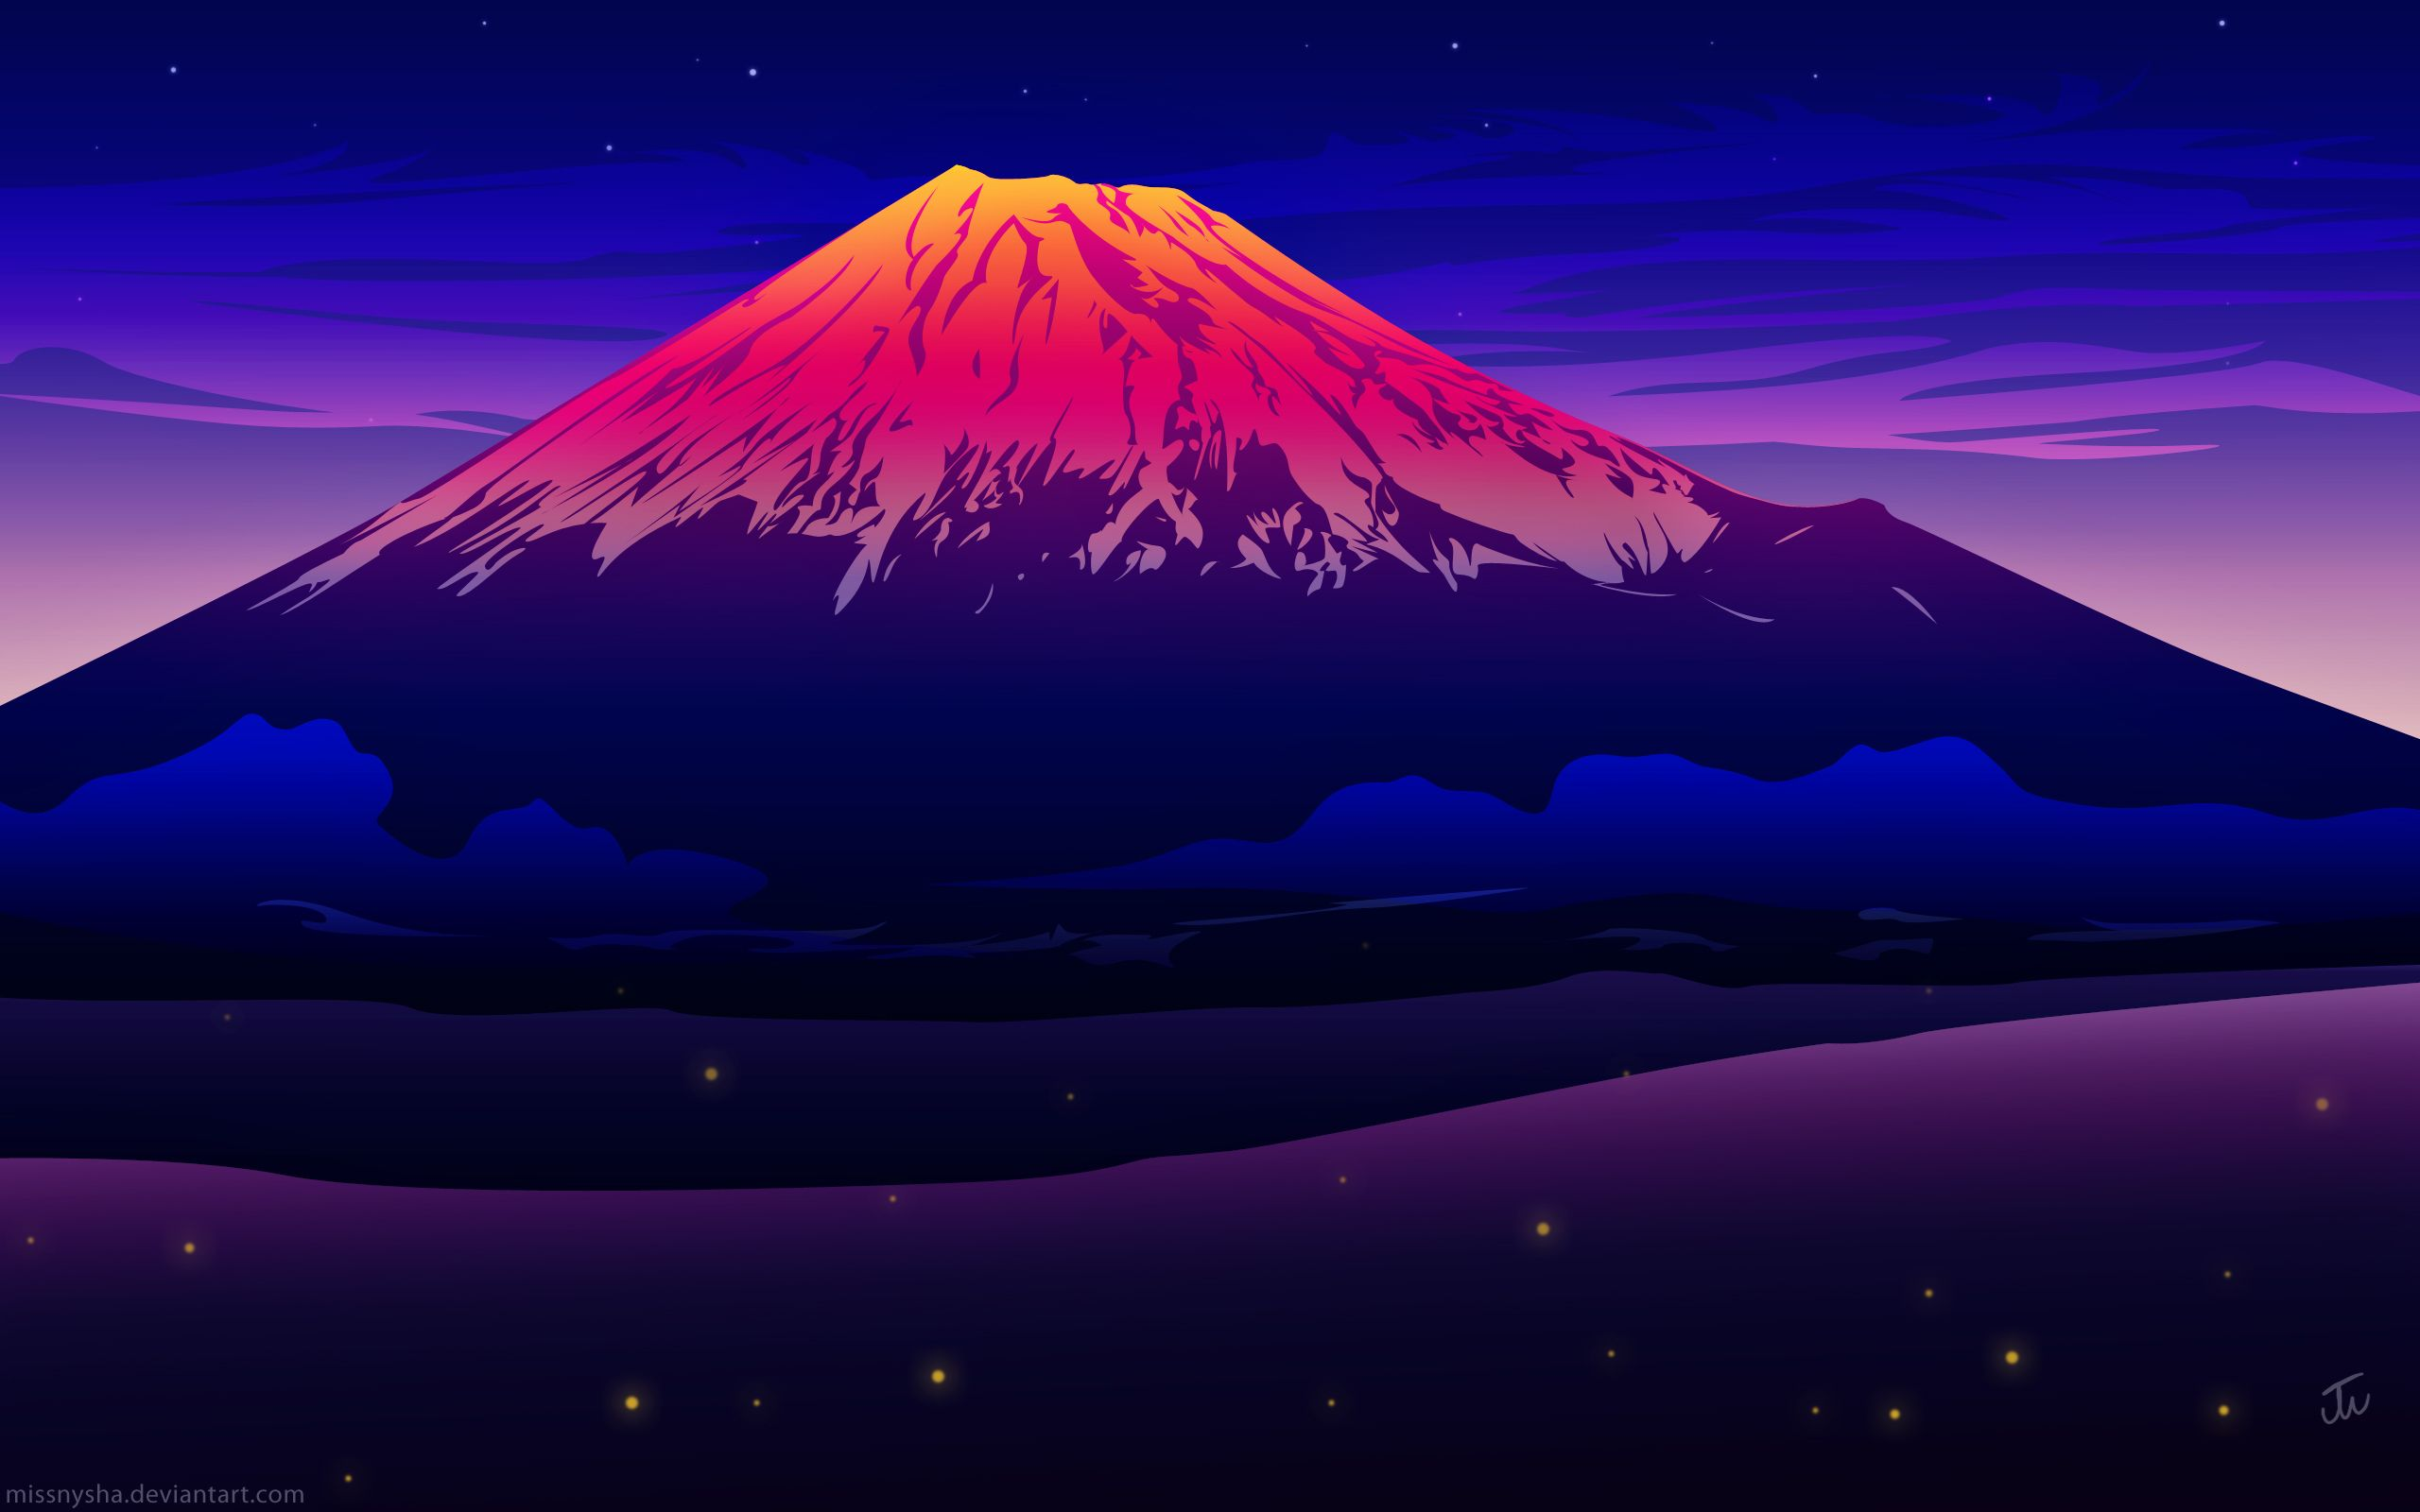 Mount Fuji Sunset Wallpapers Top Free Mount Fuji Sunset